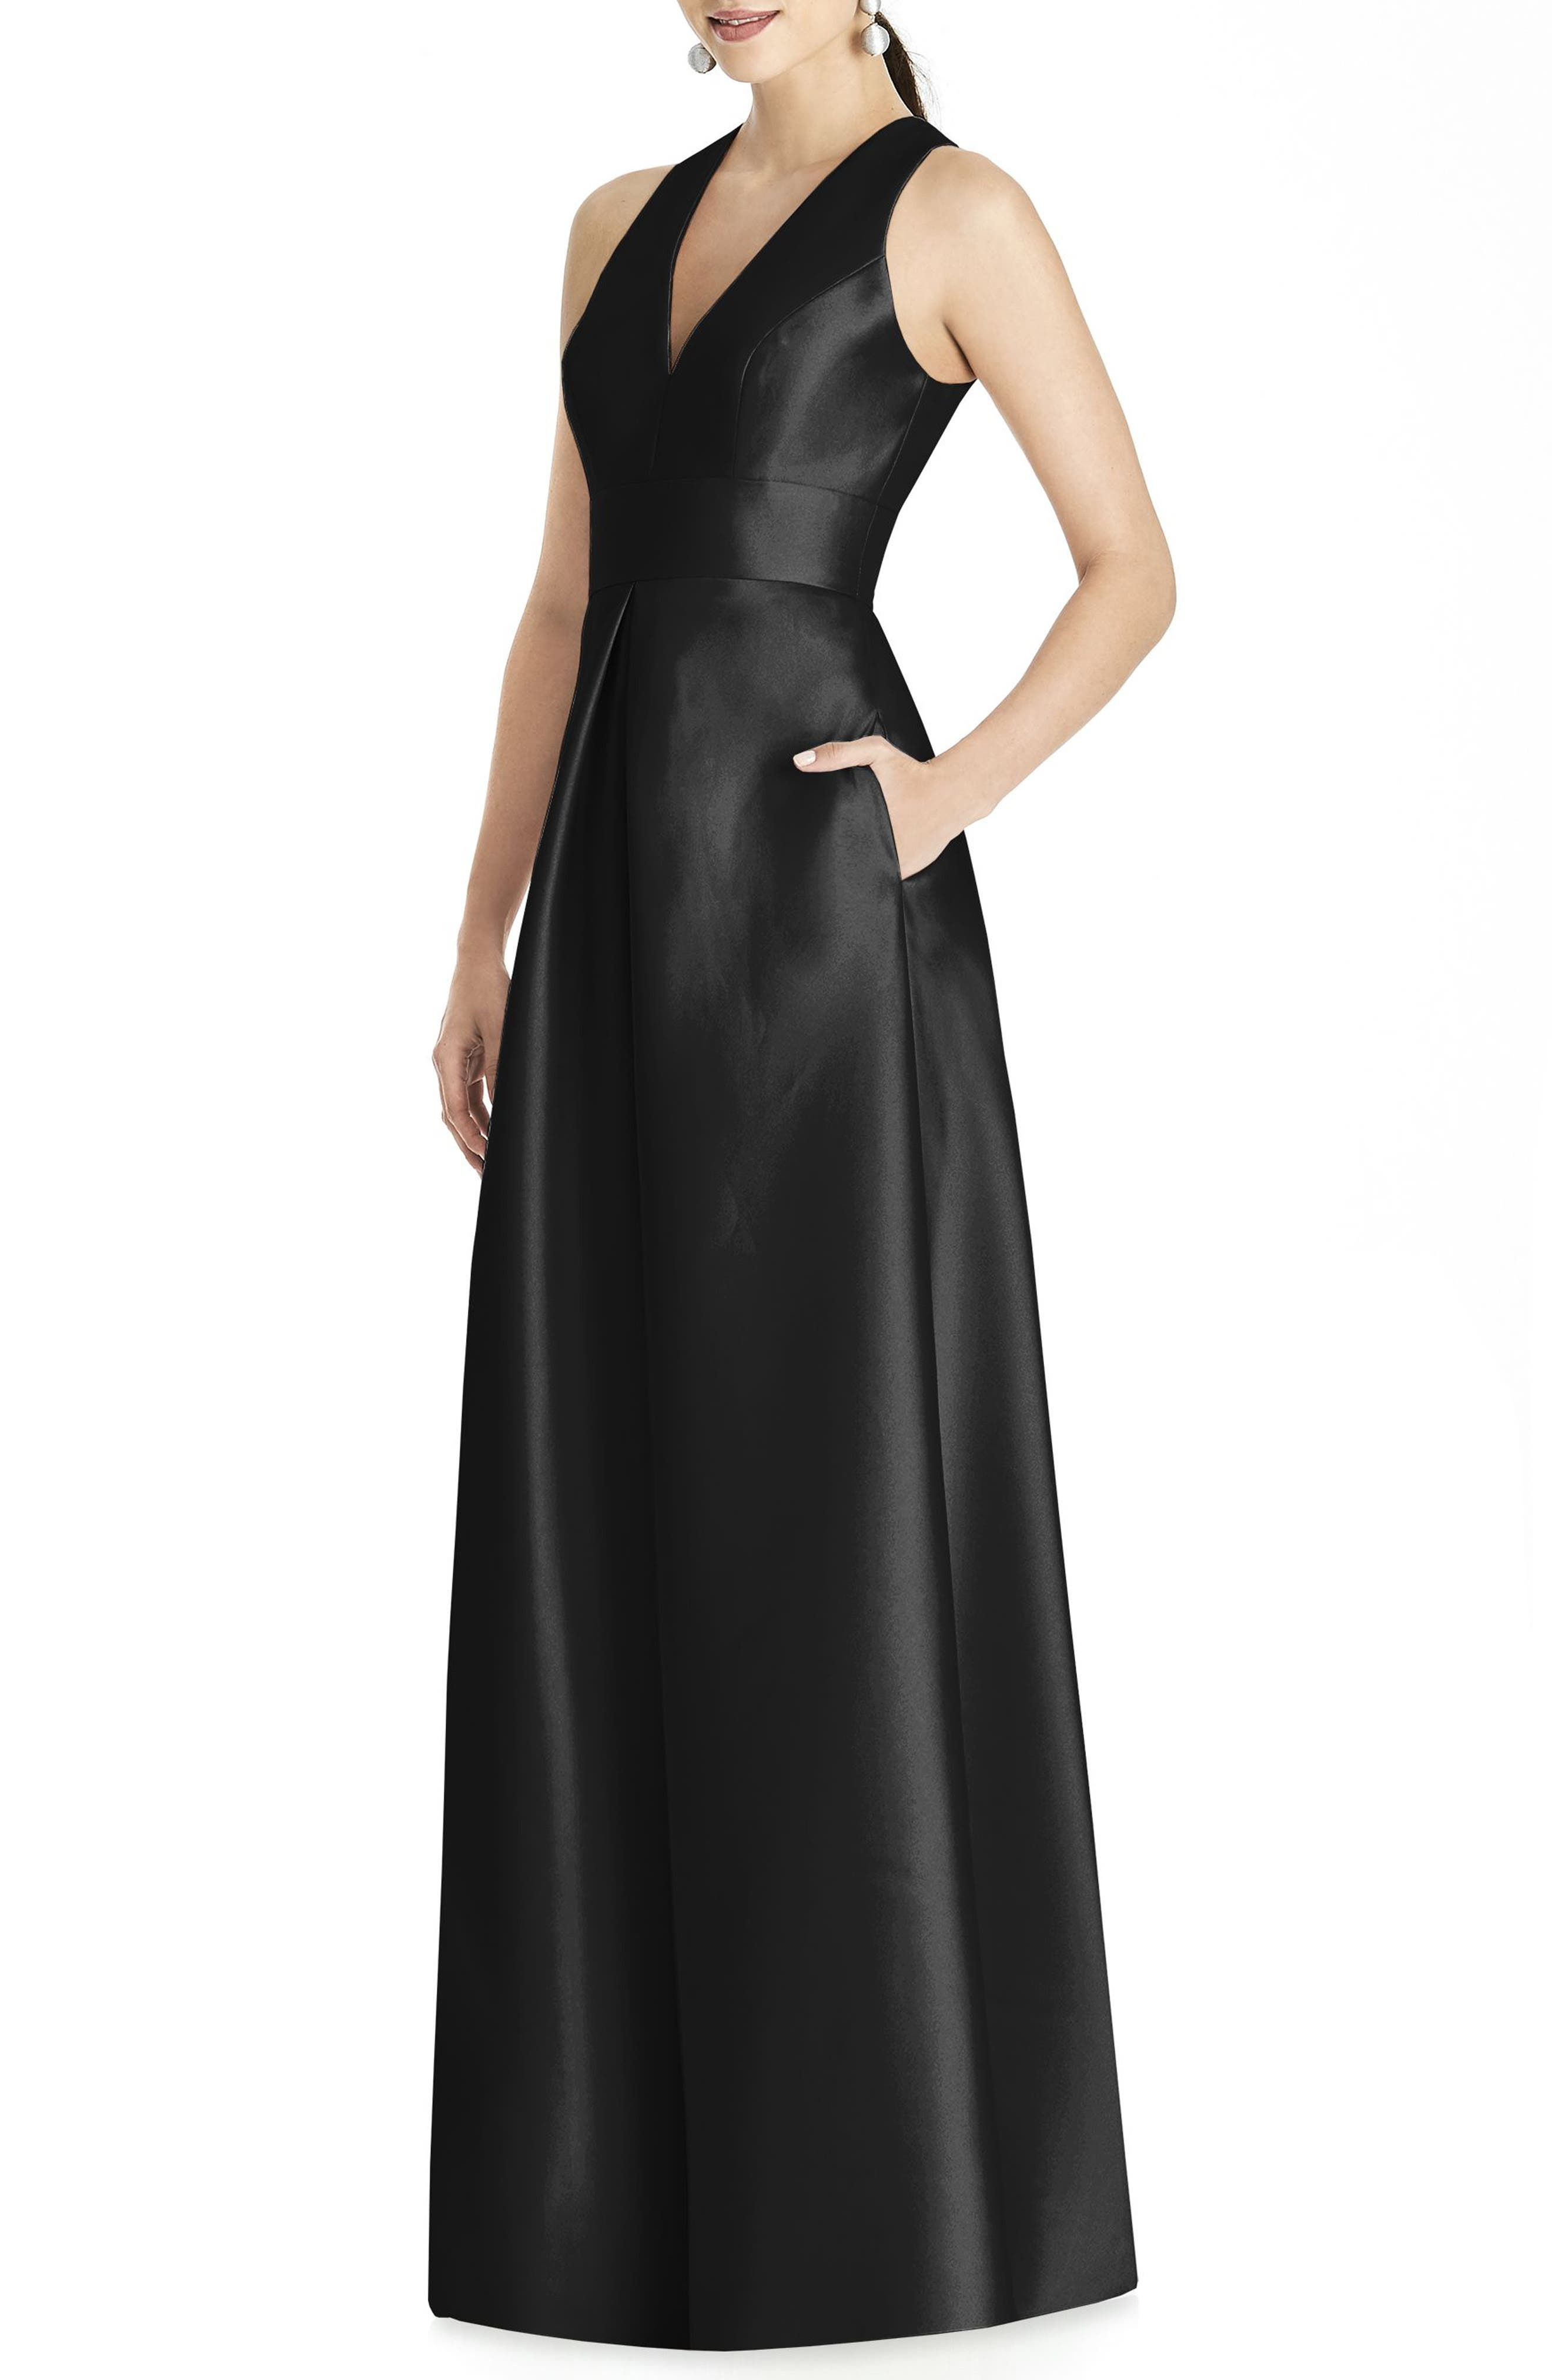 ALFRED SUNG, Sleeveless Sateen Gown, Main thumbnail 1, color, BLACK